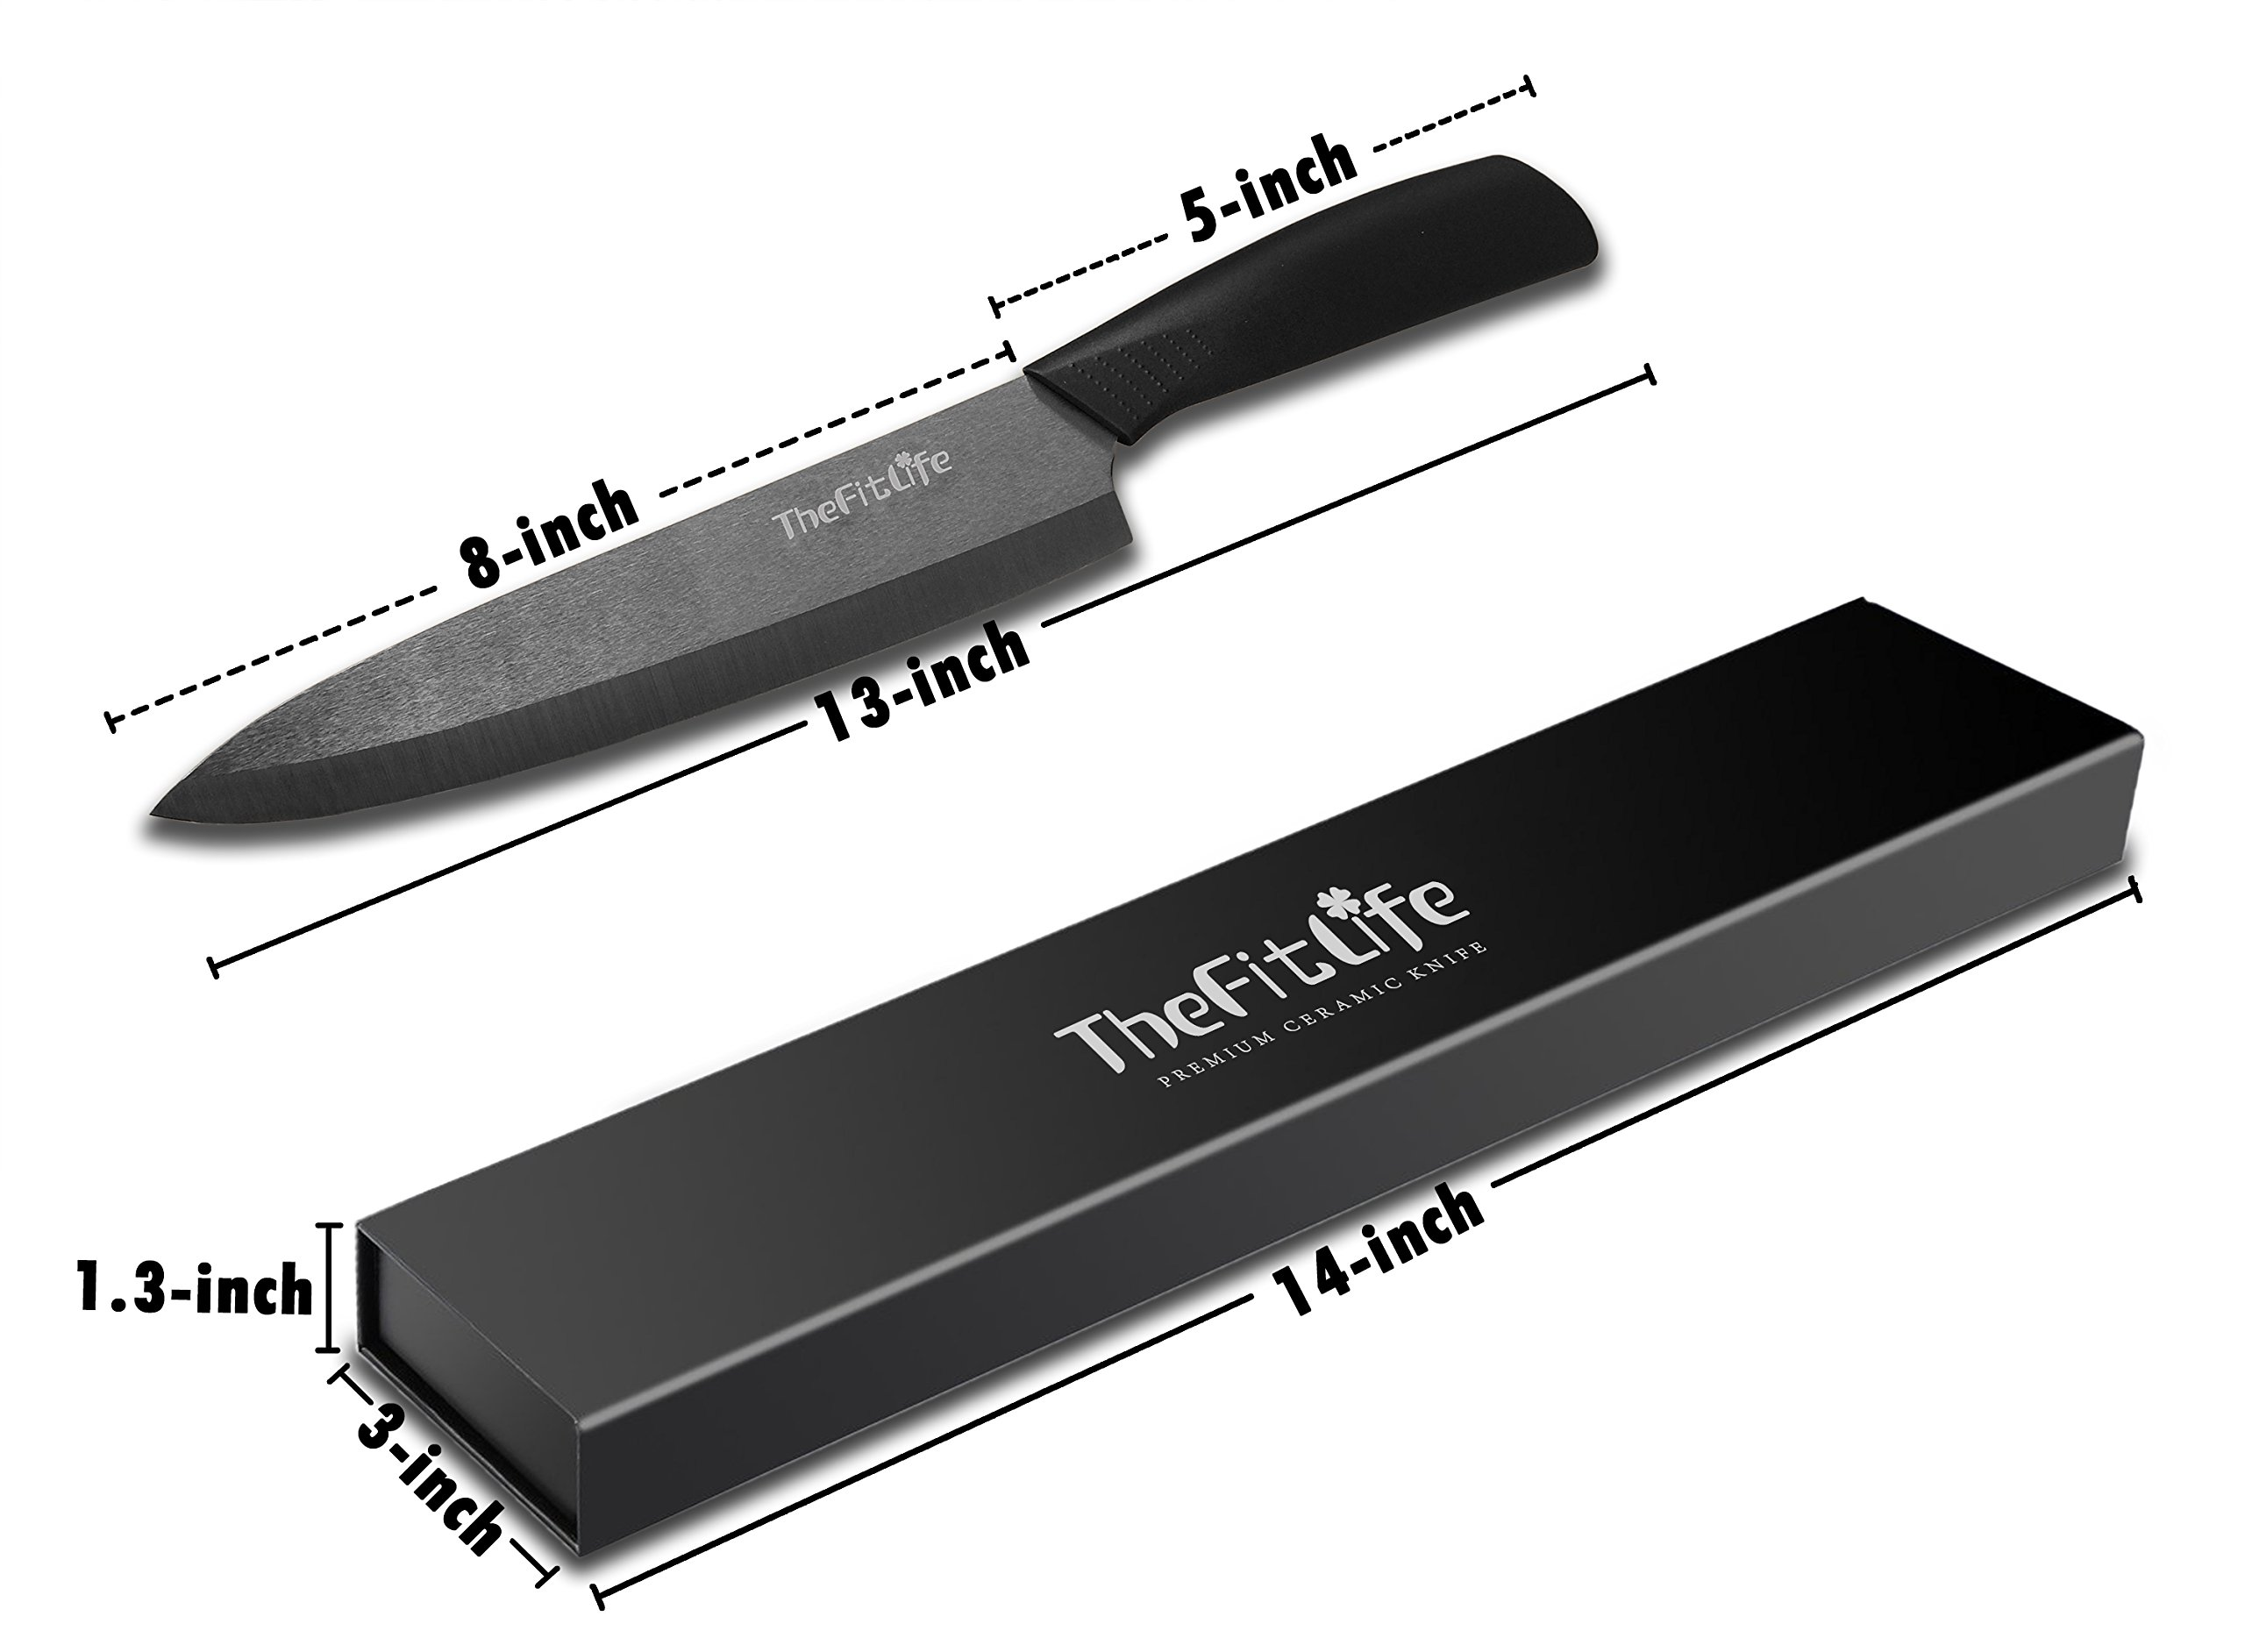 TheFitLife Professional 8 Inches Ceramic Knife - Best Chef Knife for ...